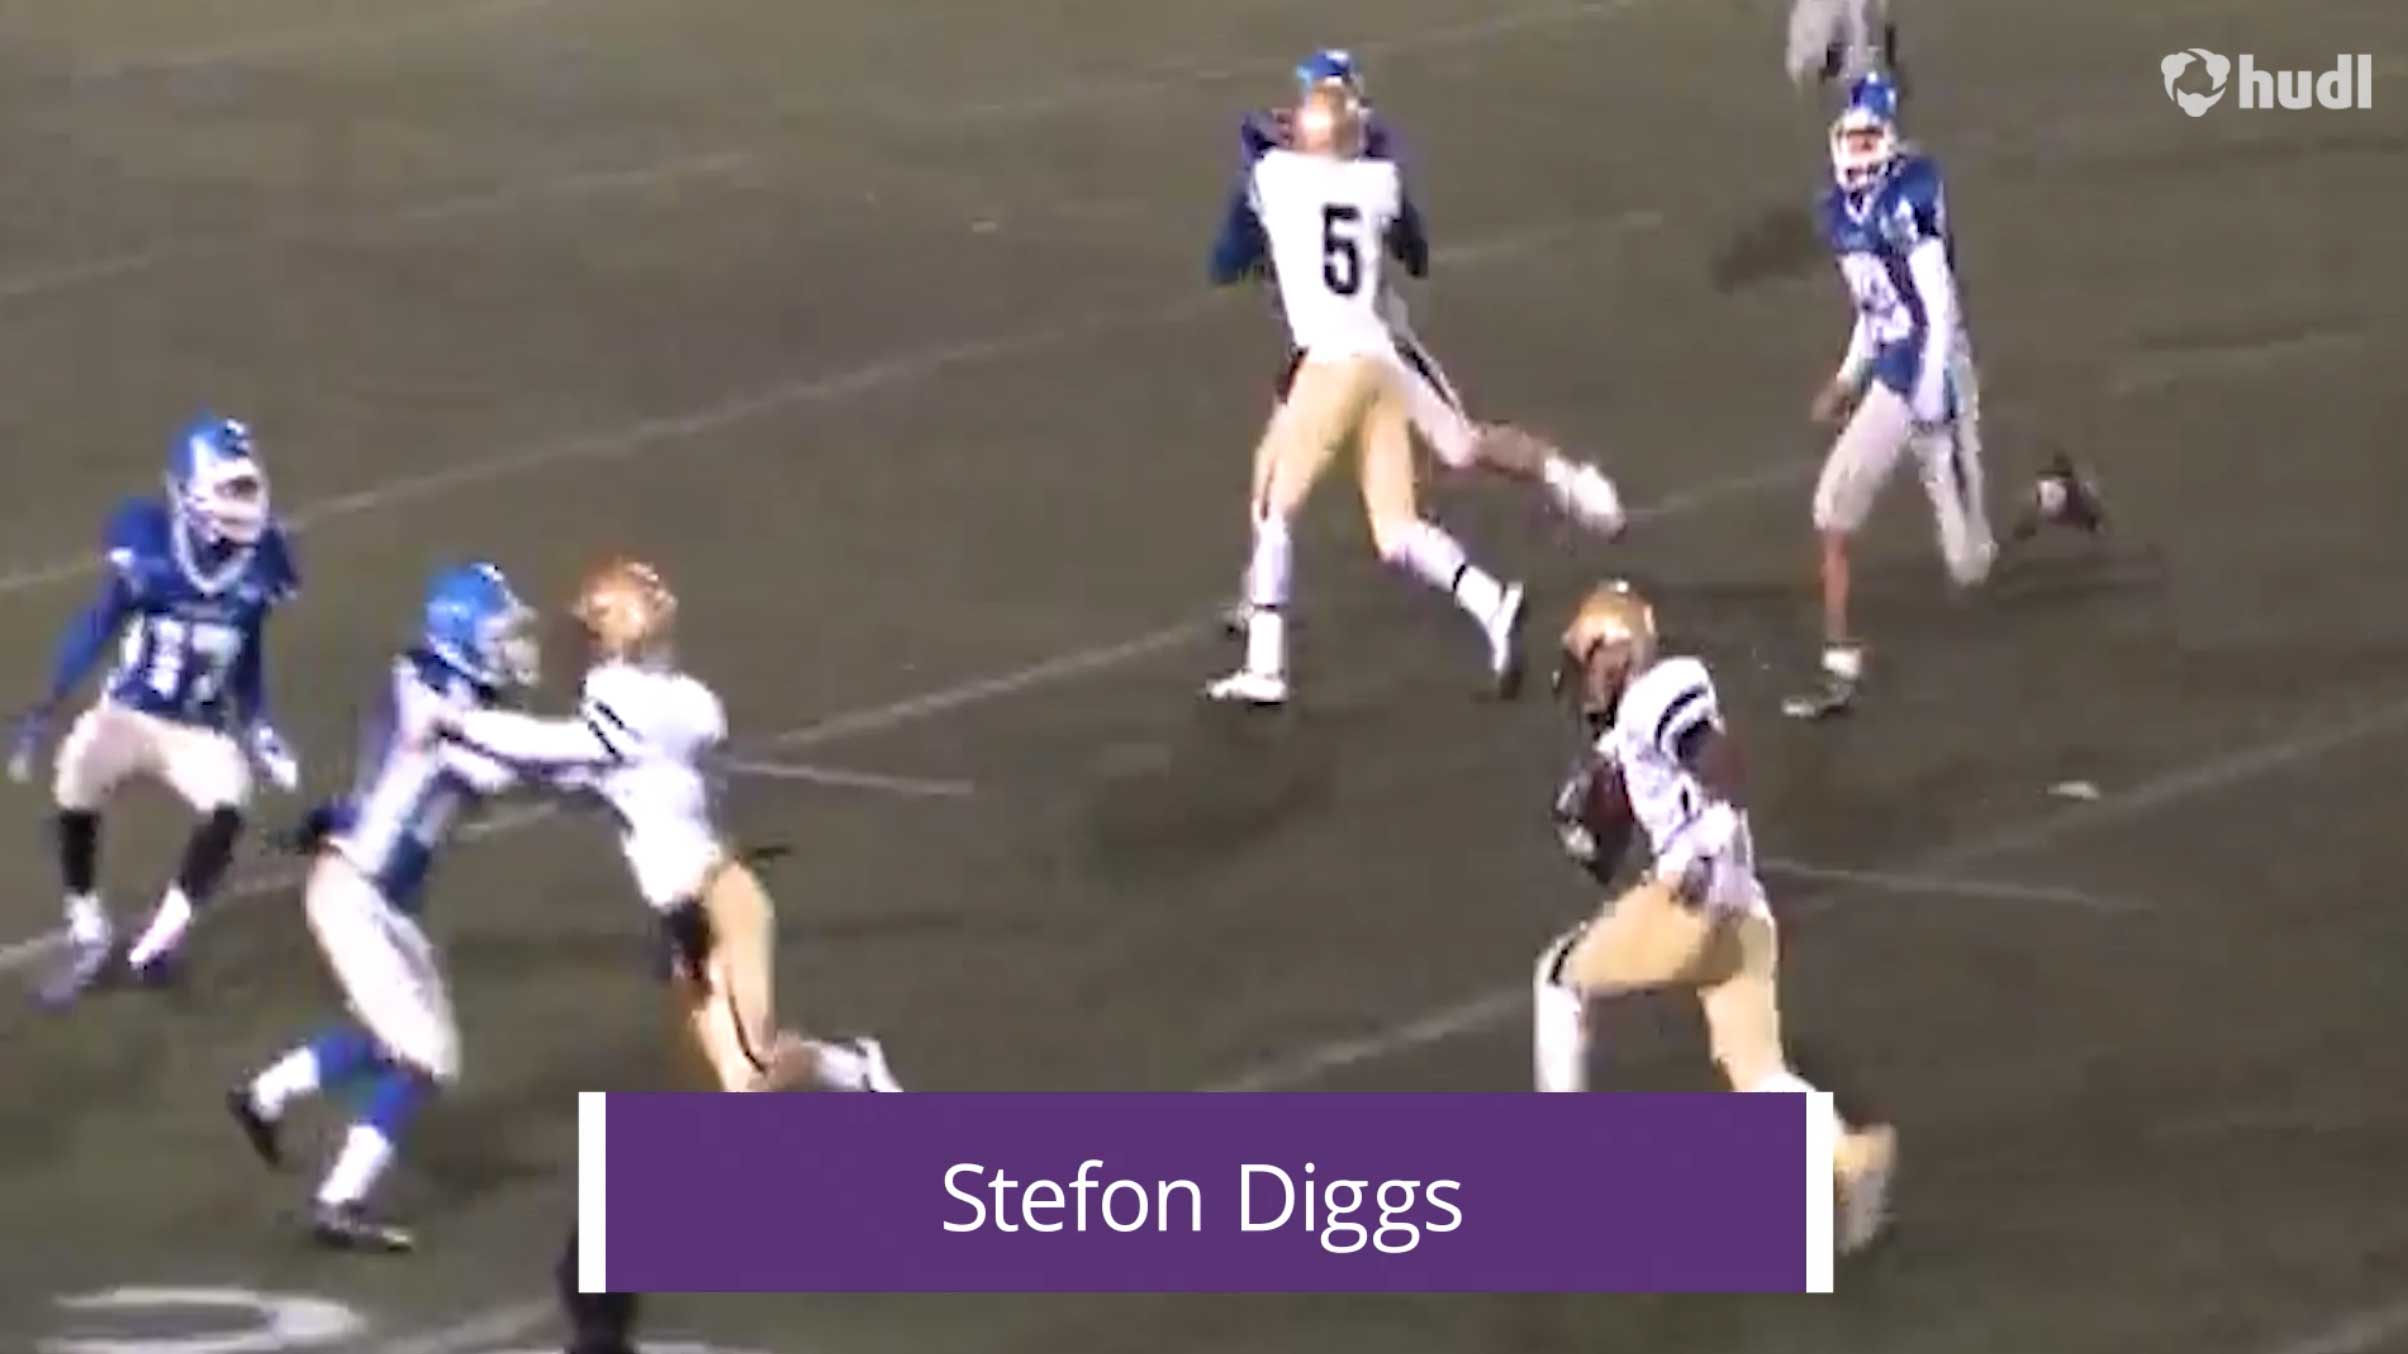 NFL Throwback Stefon Diggs Football Highlights highlights Hudl